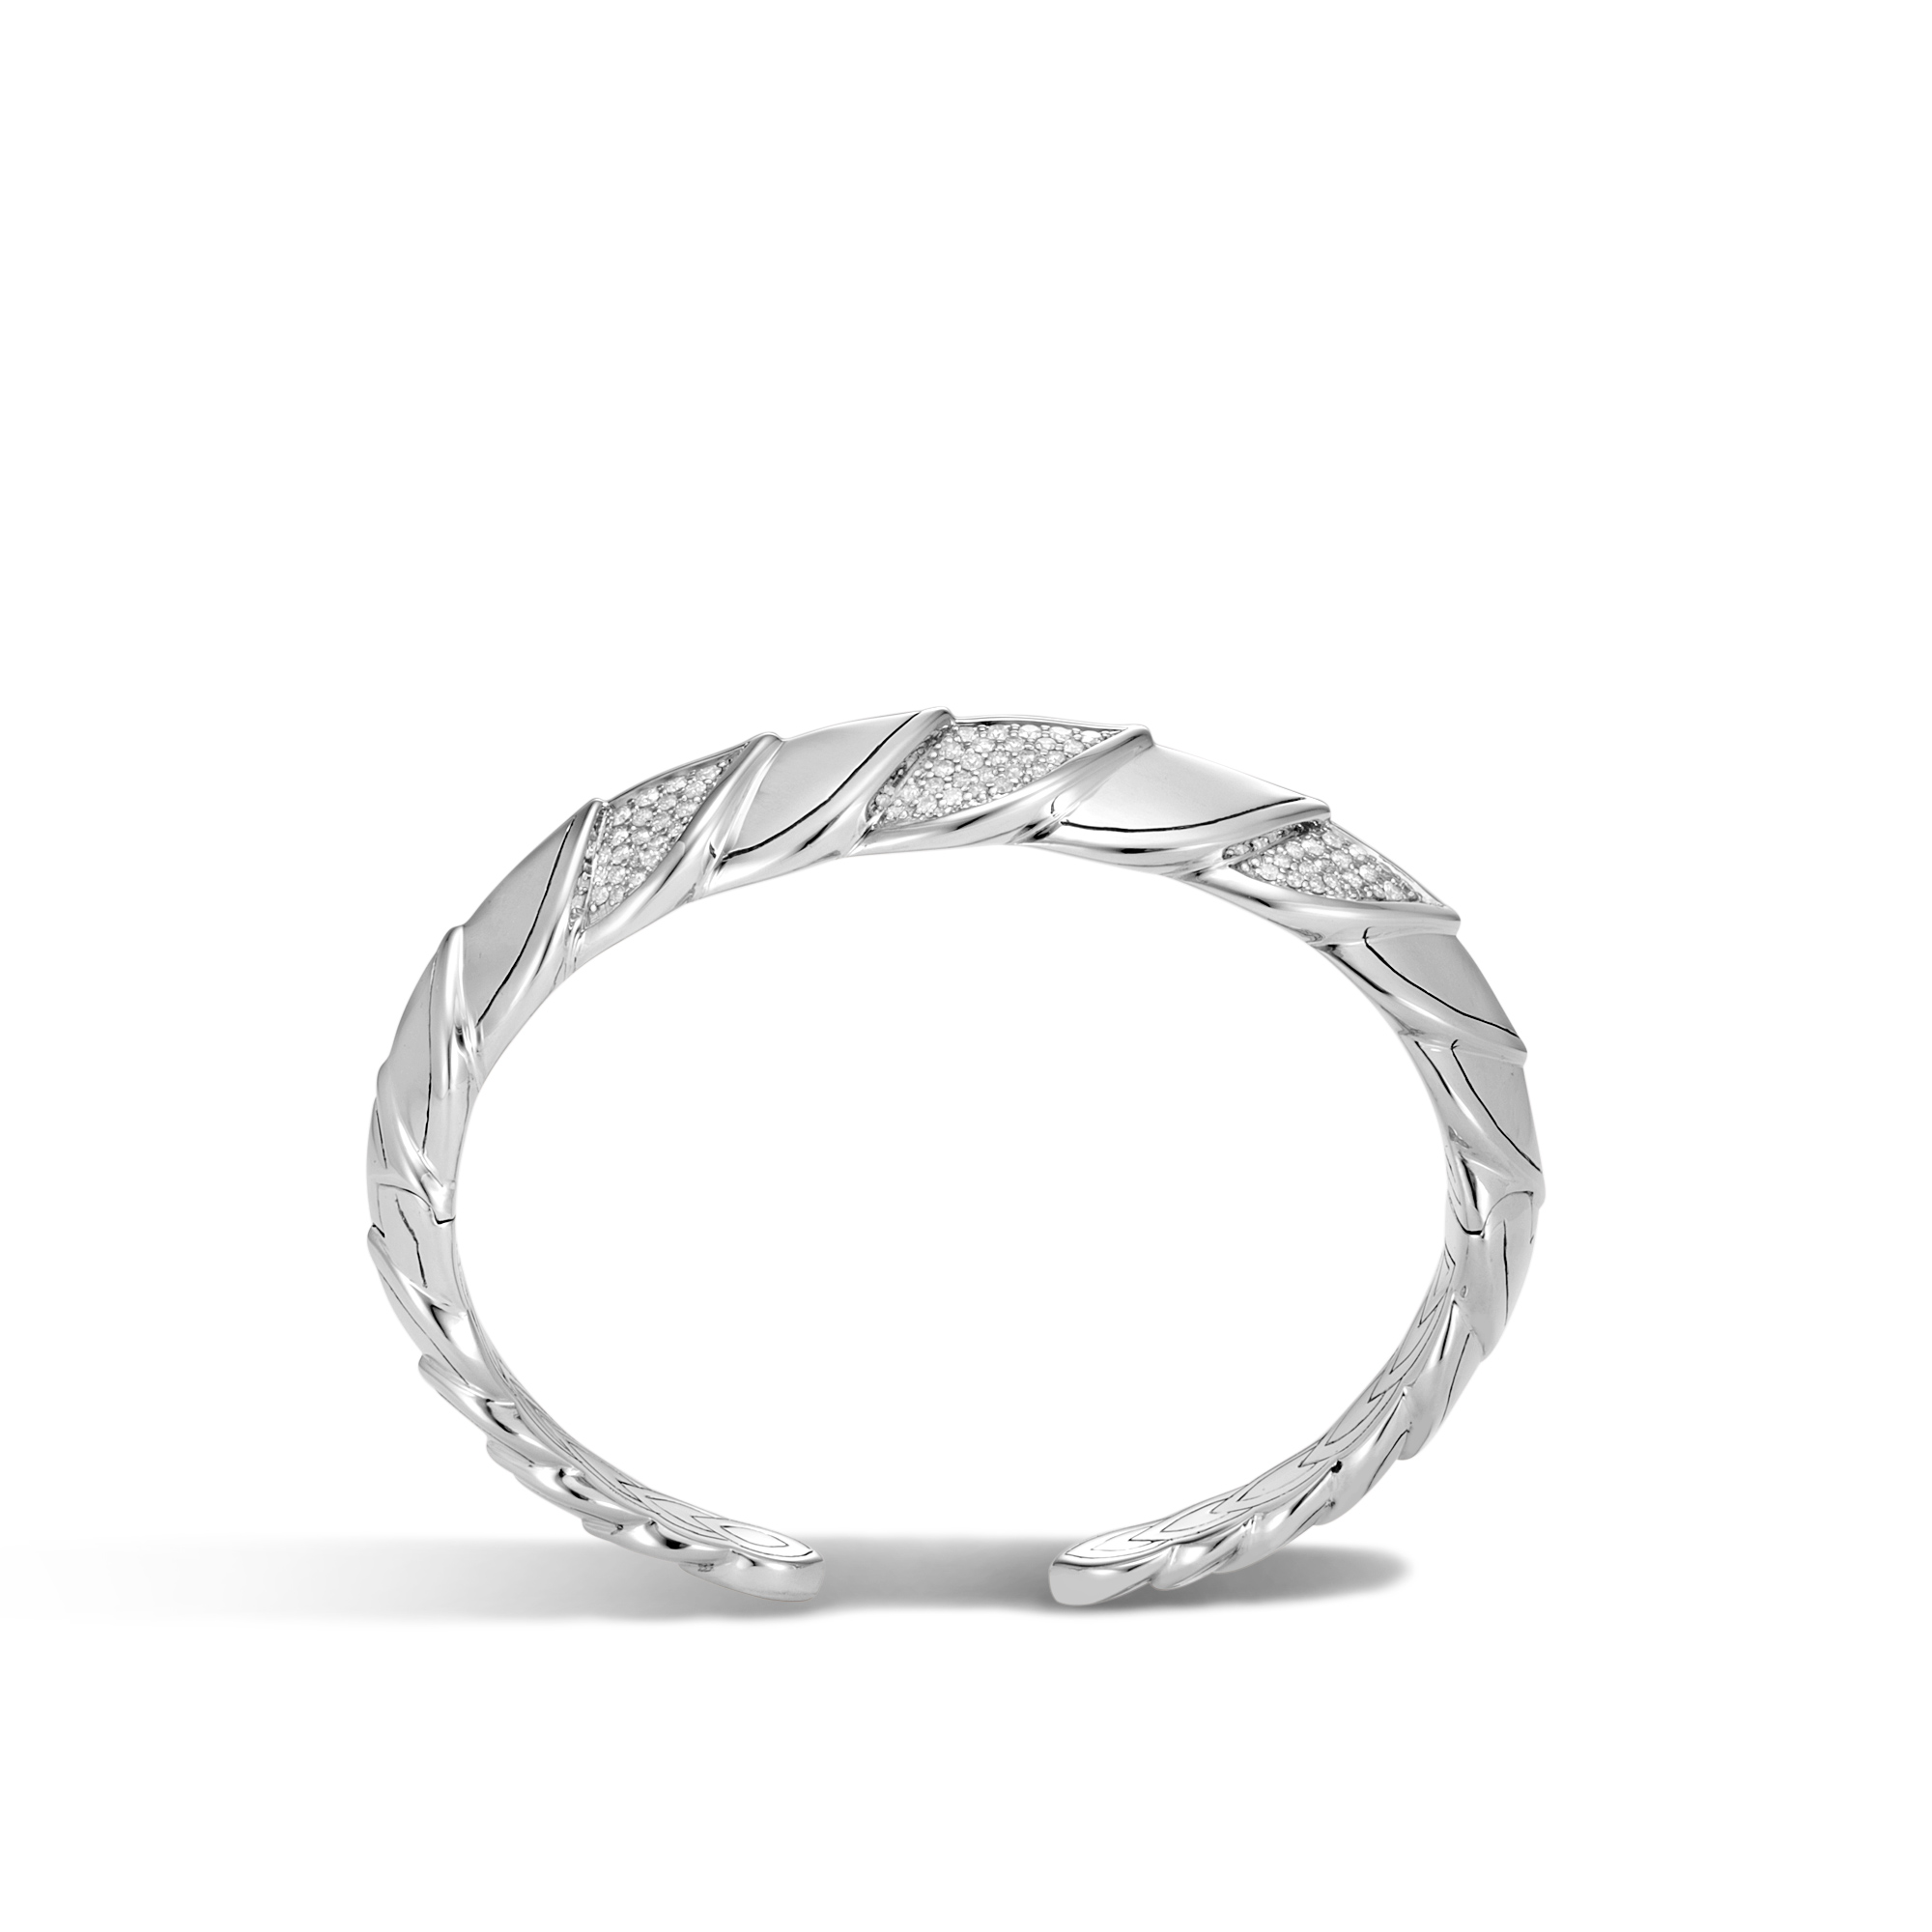 Legends Naga 18.5MM Cuff in Silver with Diamonds, White Diamond, large